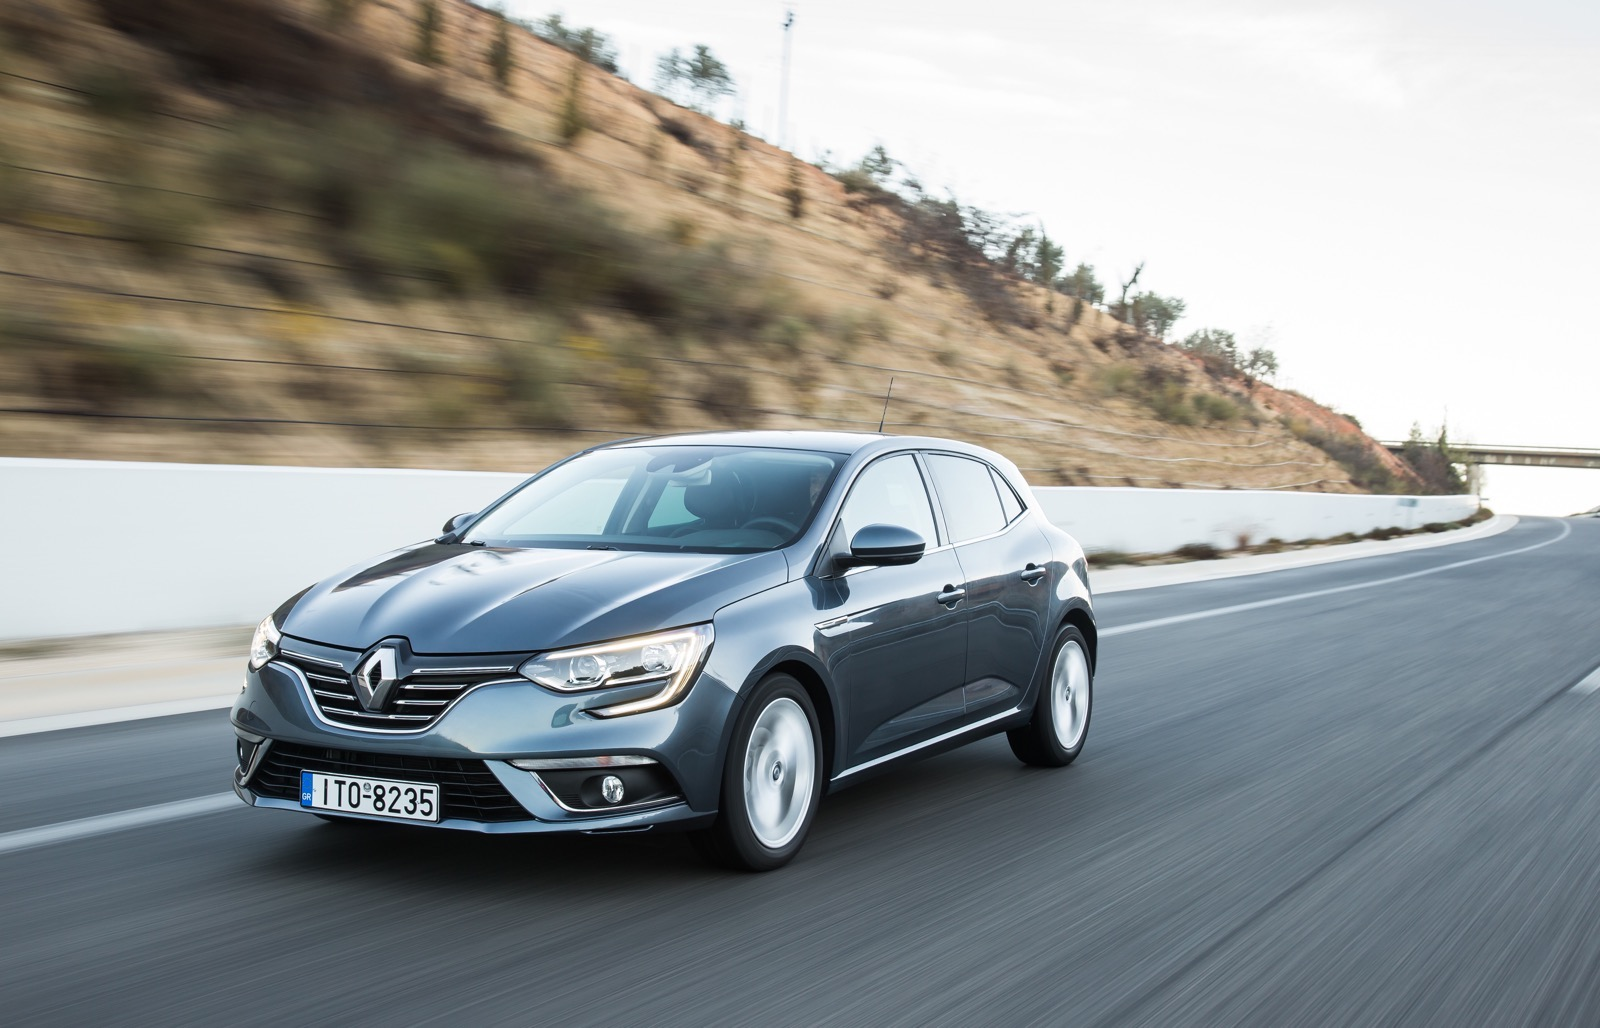 First_Drive_Renault_Megane_72